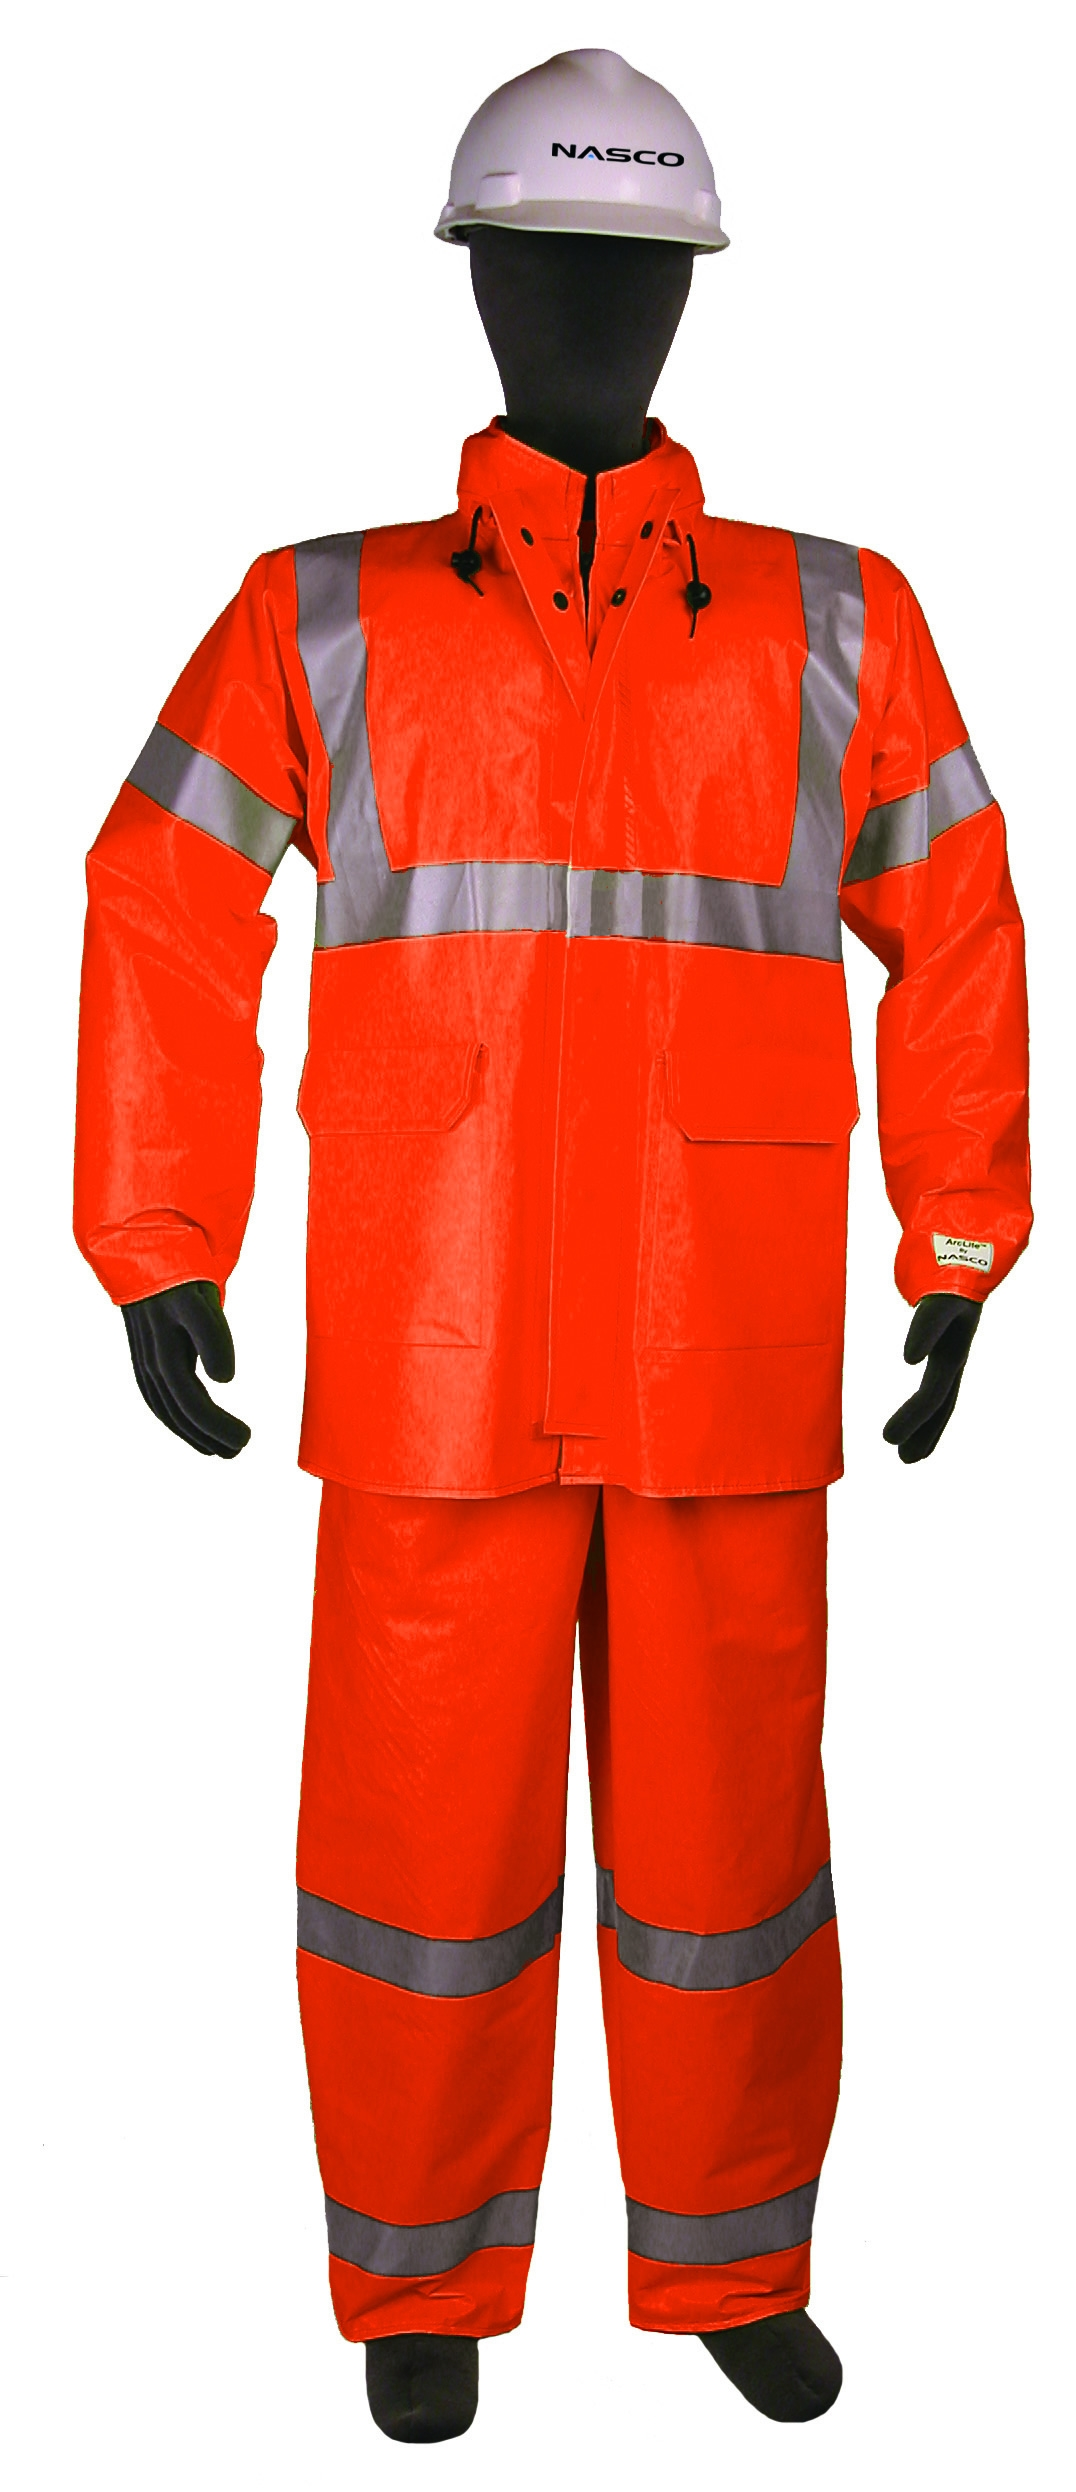 Arclite 1500 Series Full Suit Fluorescent Orange